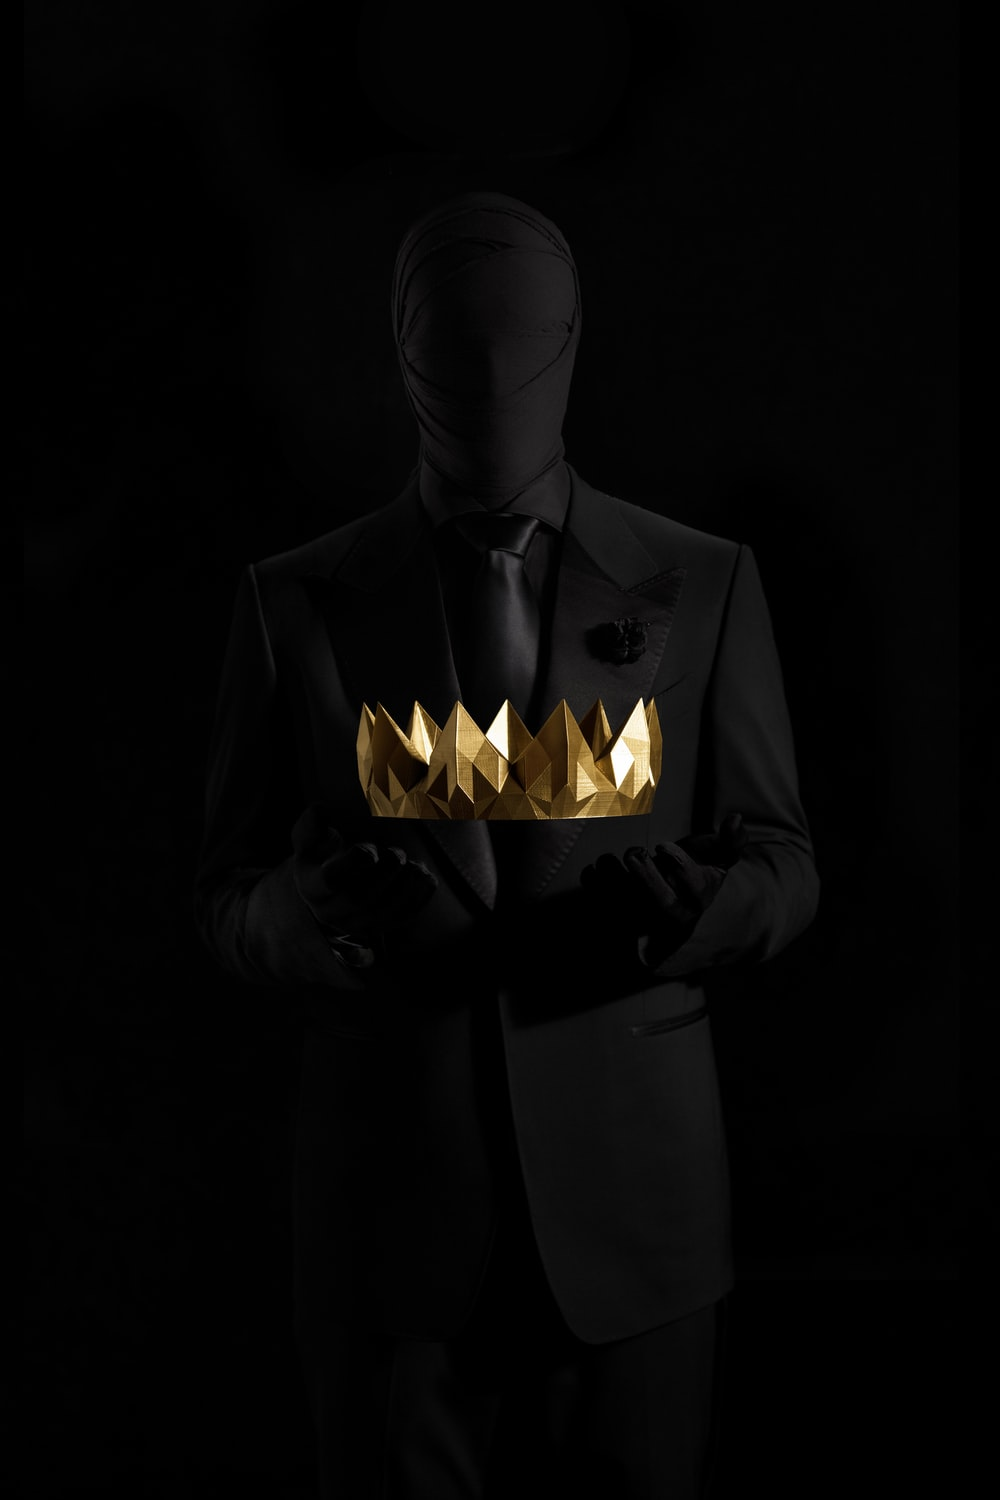 person in black suit jacket holding gold crown